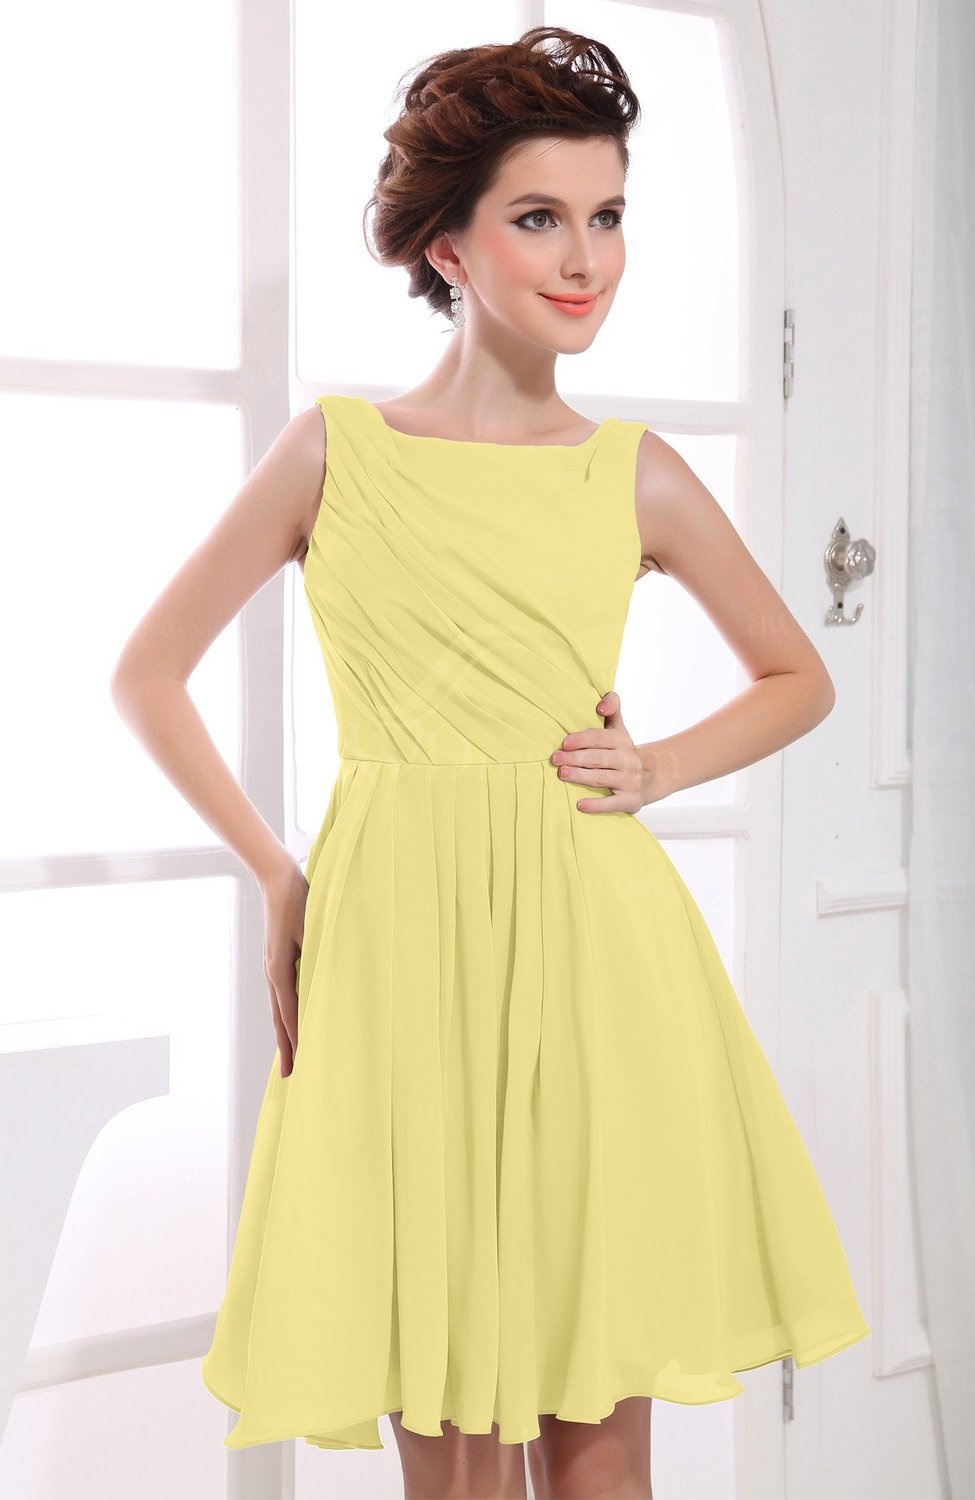 Modest bridesmaid dresses uwdress pastel yellow casual a line sabrina zipper chiffon ruching party dresses ombrellifo Choice Image